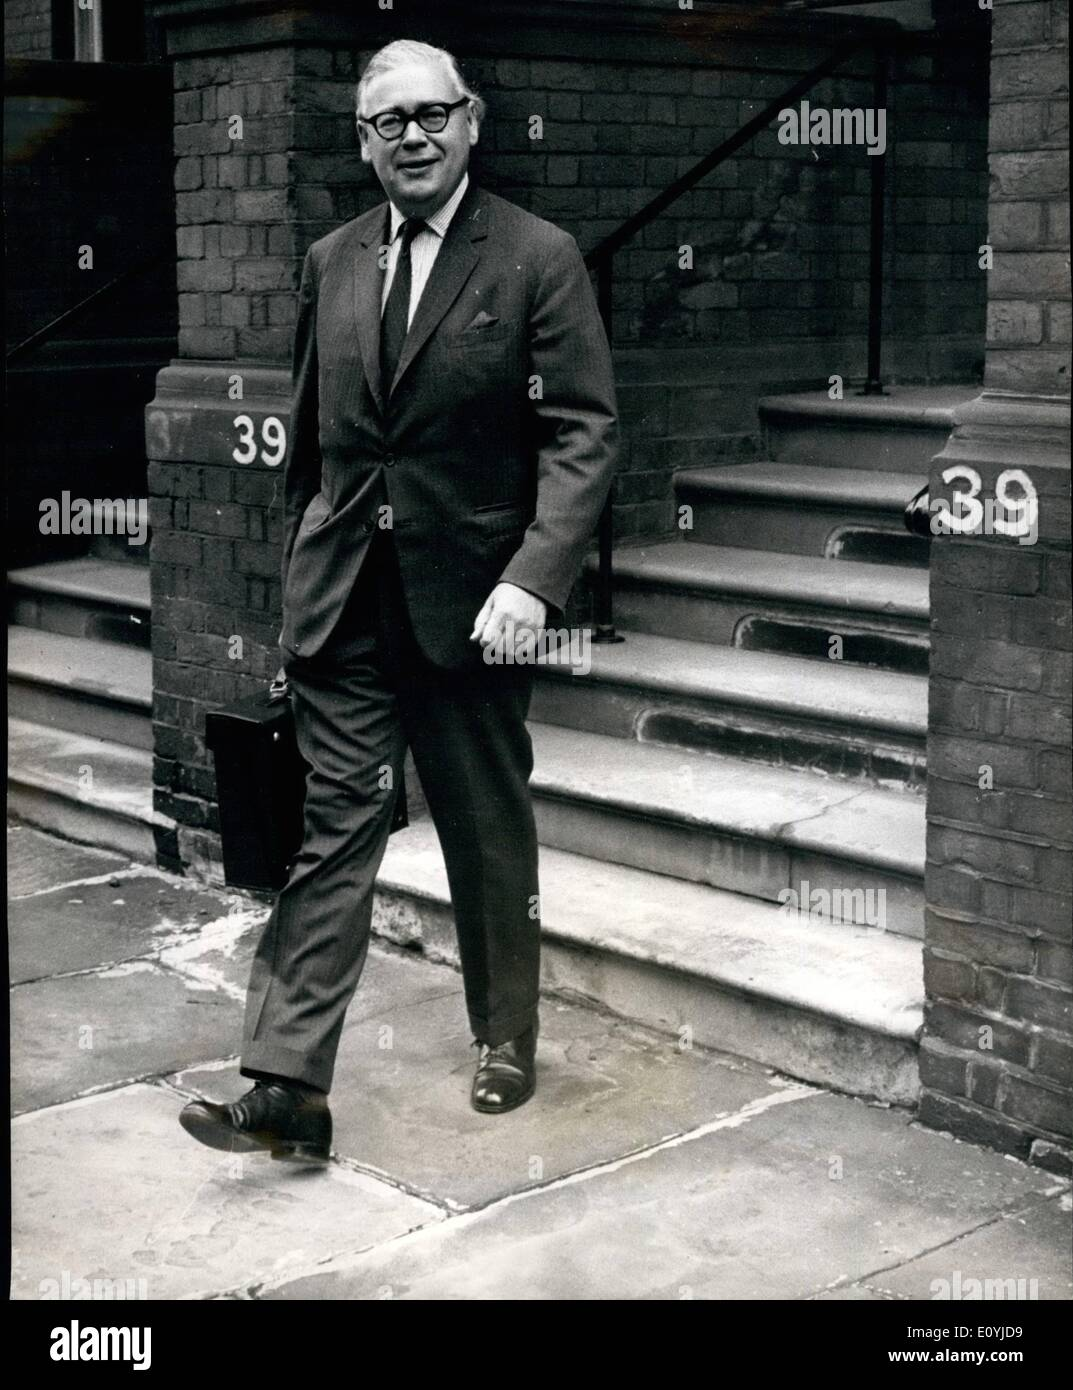 Jul. 07, 1970 - Mr. Geoffrey Rippon is new ''Mr Europe''. Mr. Geoffrey Rippon former minister of Technology, will succeed Mr. Anthony Barber as Chancellor of the Duchy Lancaster, with responsibility for the Common Market negotiations. Photo shows Mr. Geoffrey Rippon leaving his home for the Foreign Office this morning. - Stock Image